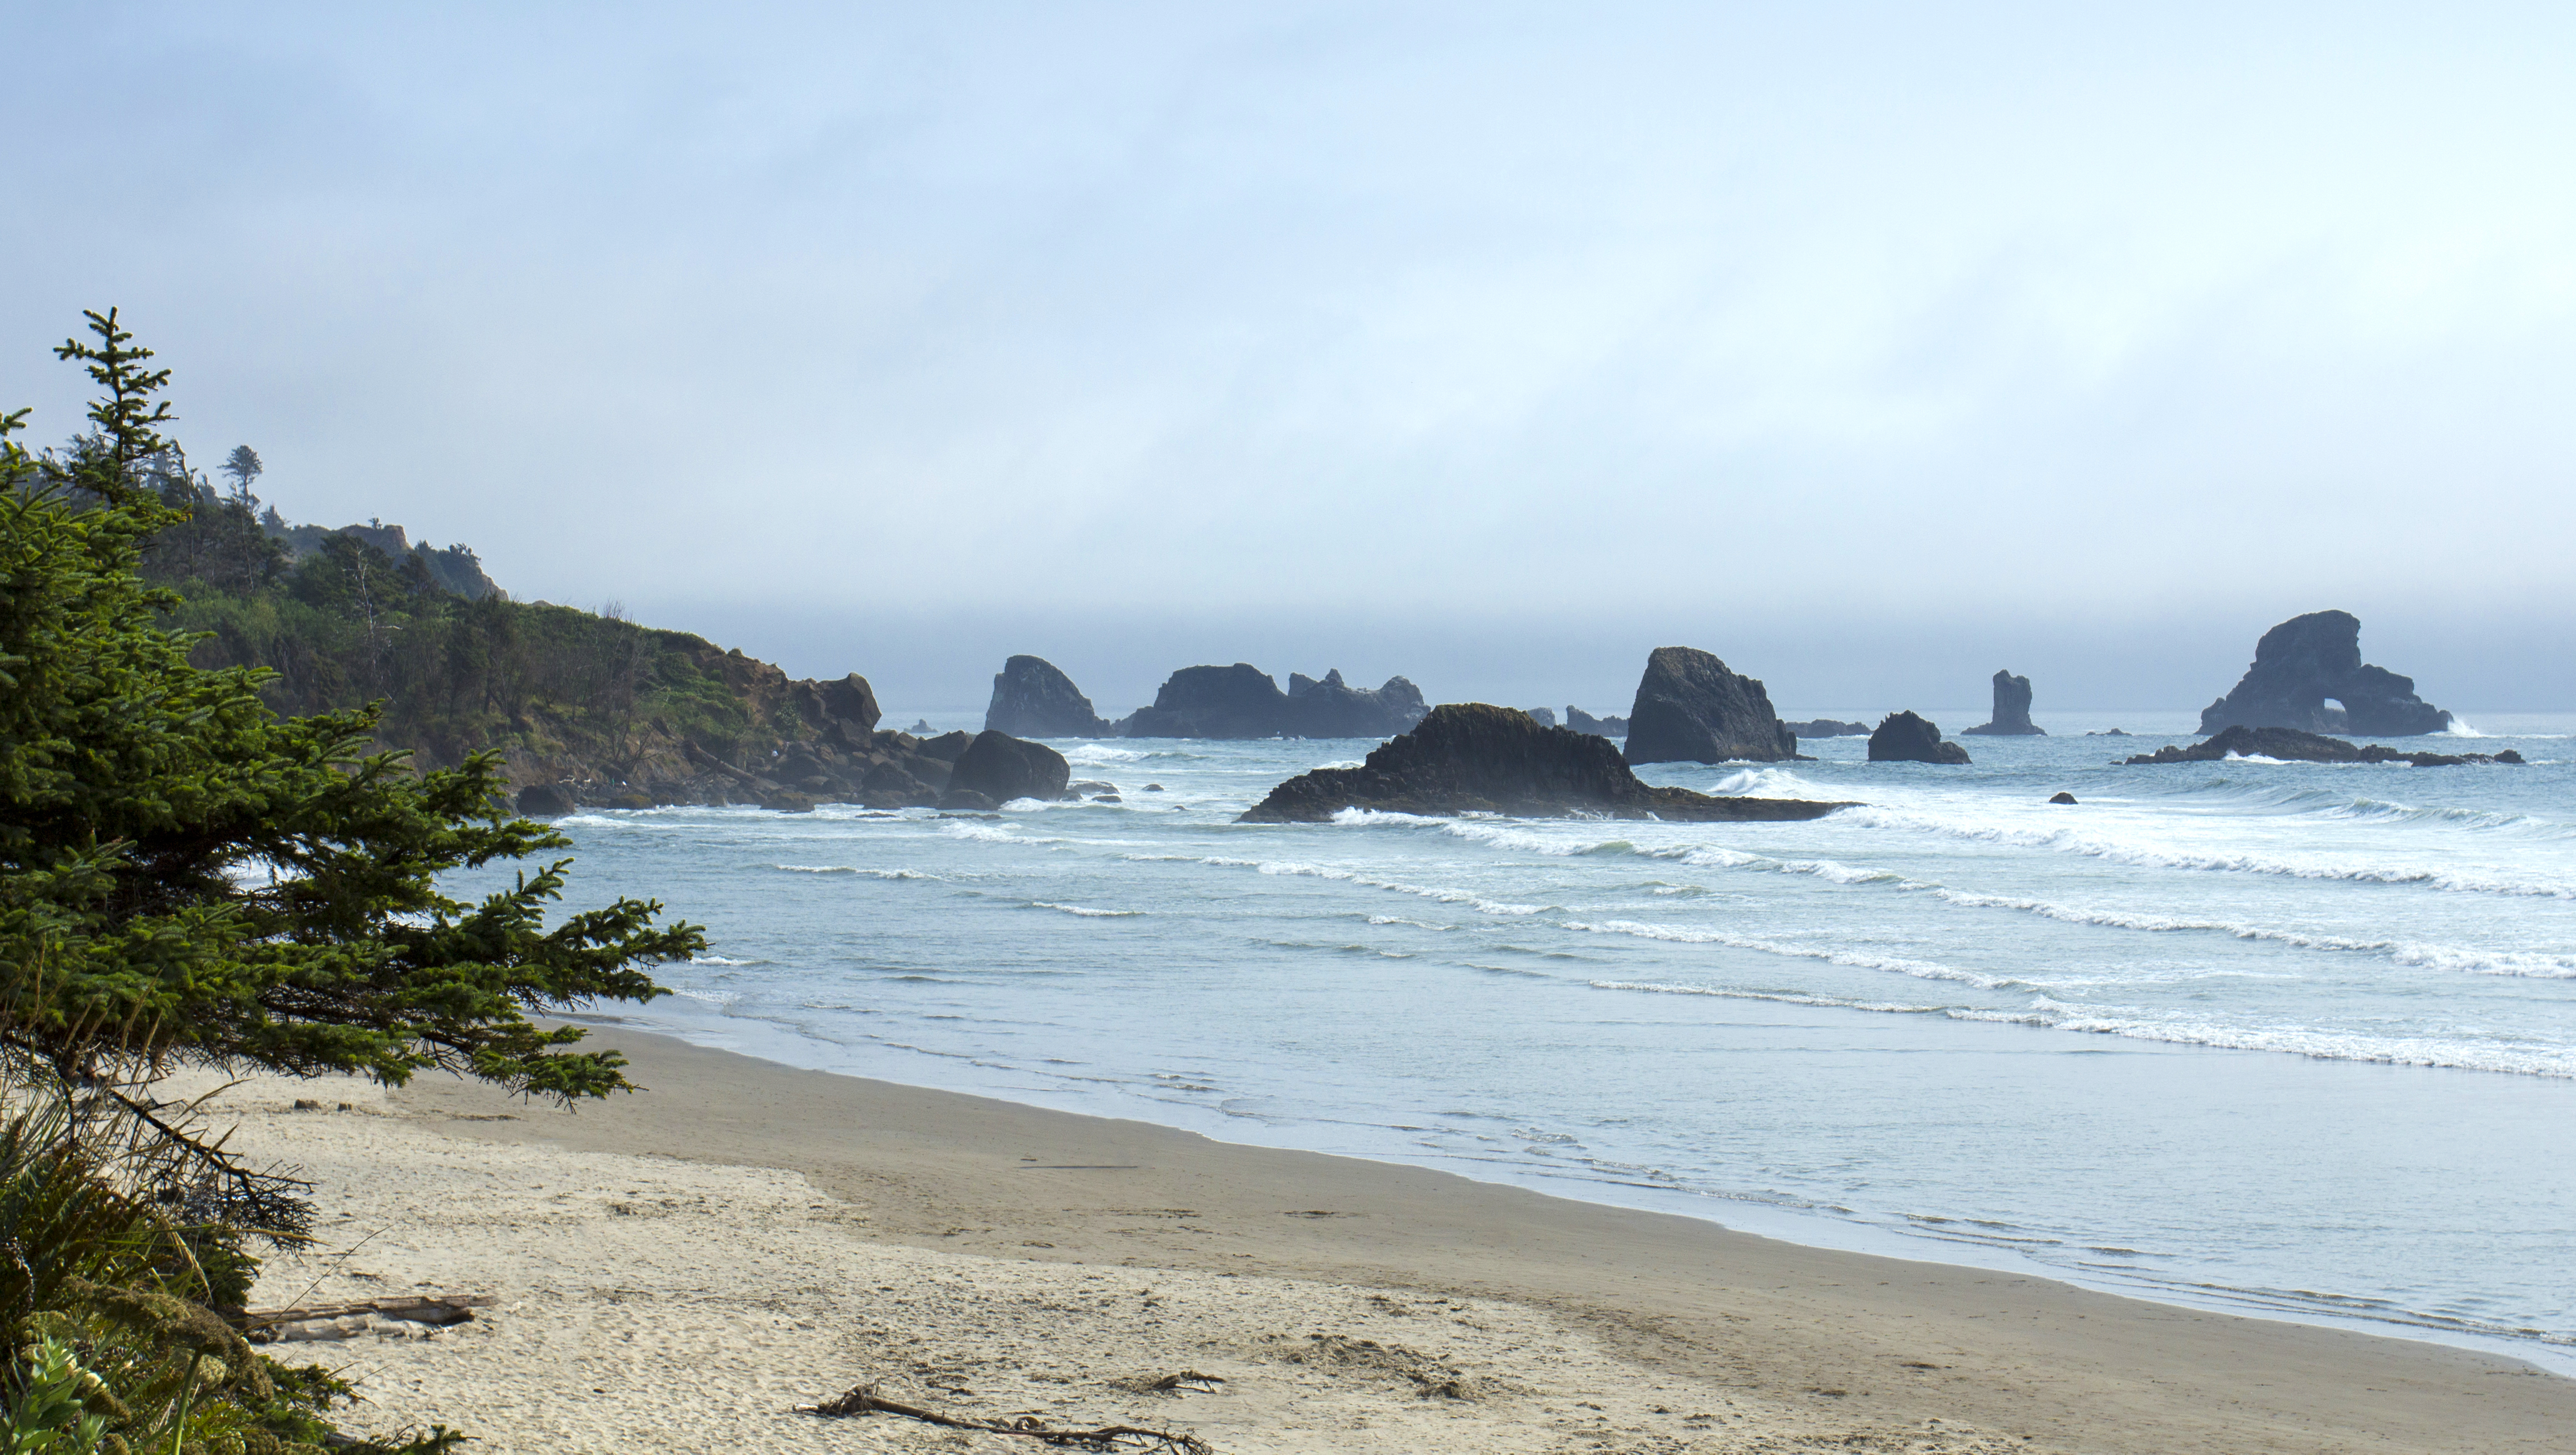 Indian beach, oregon photo